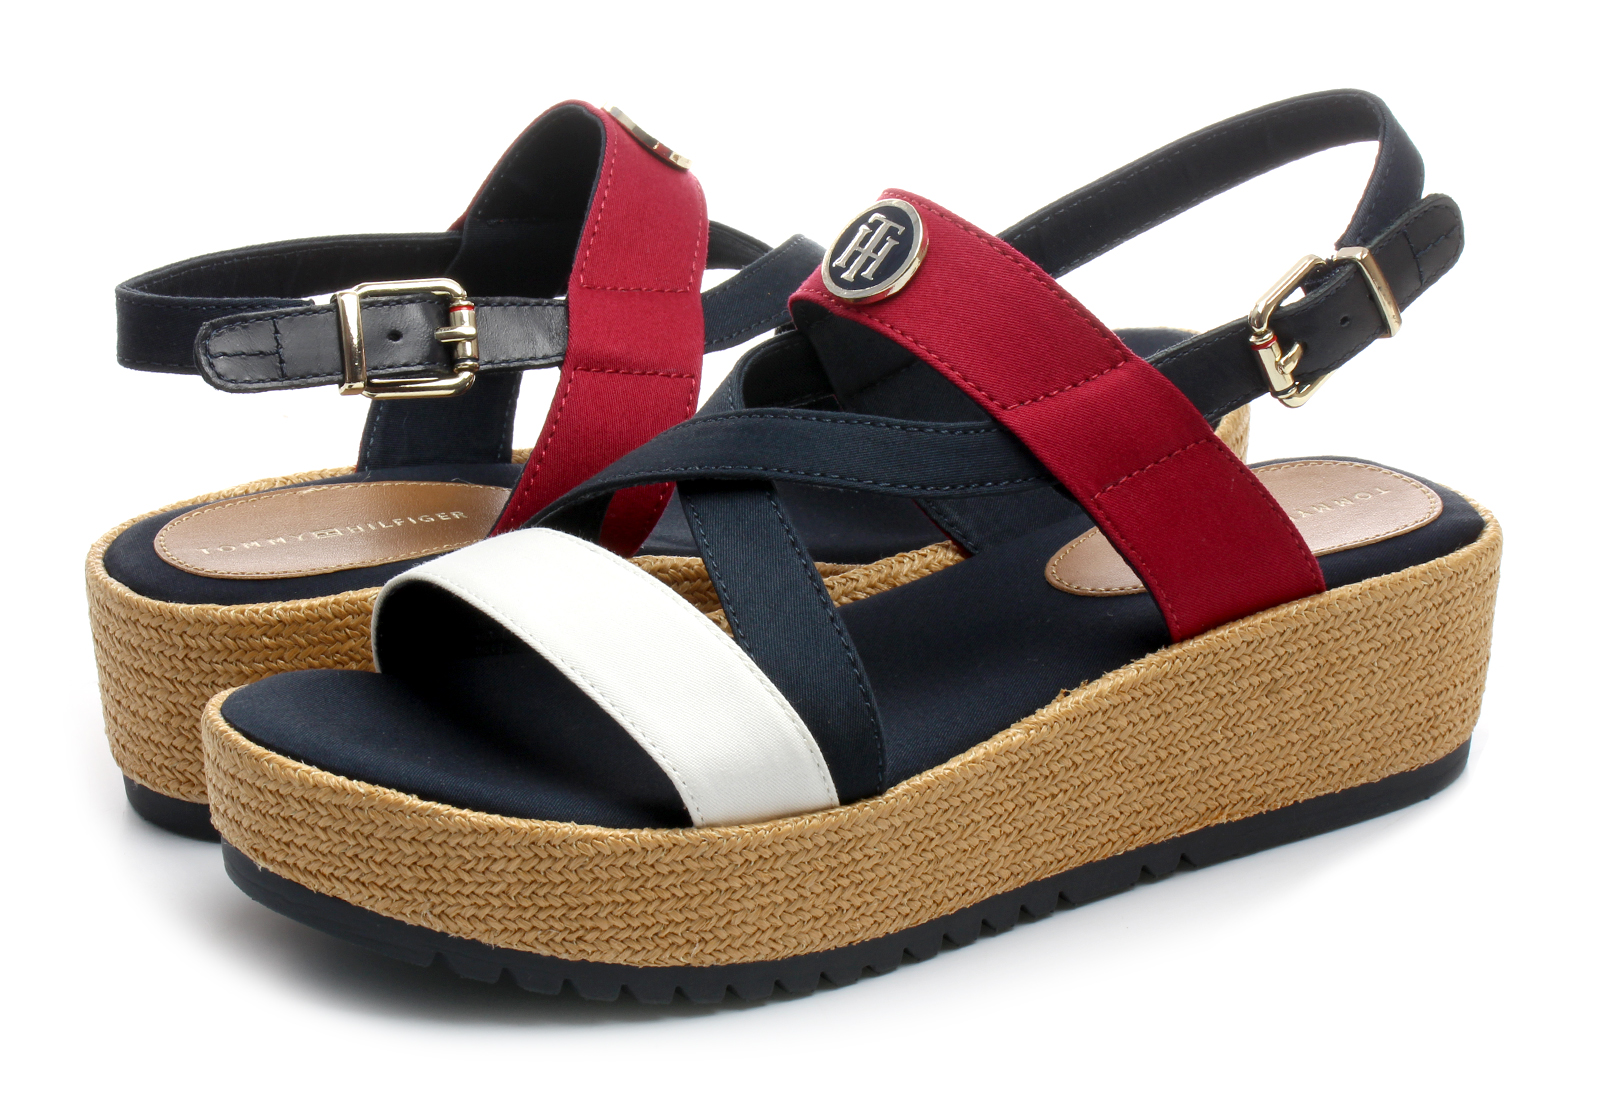 69b3692c25 Tommy Hilfiger Platforma Plave Sandale - Jemilia 2 - Office Shoes ...